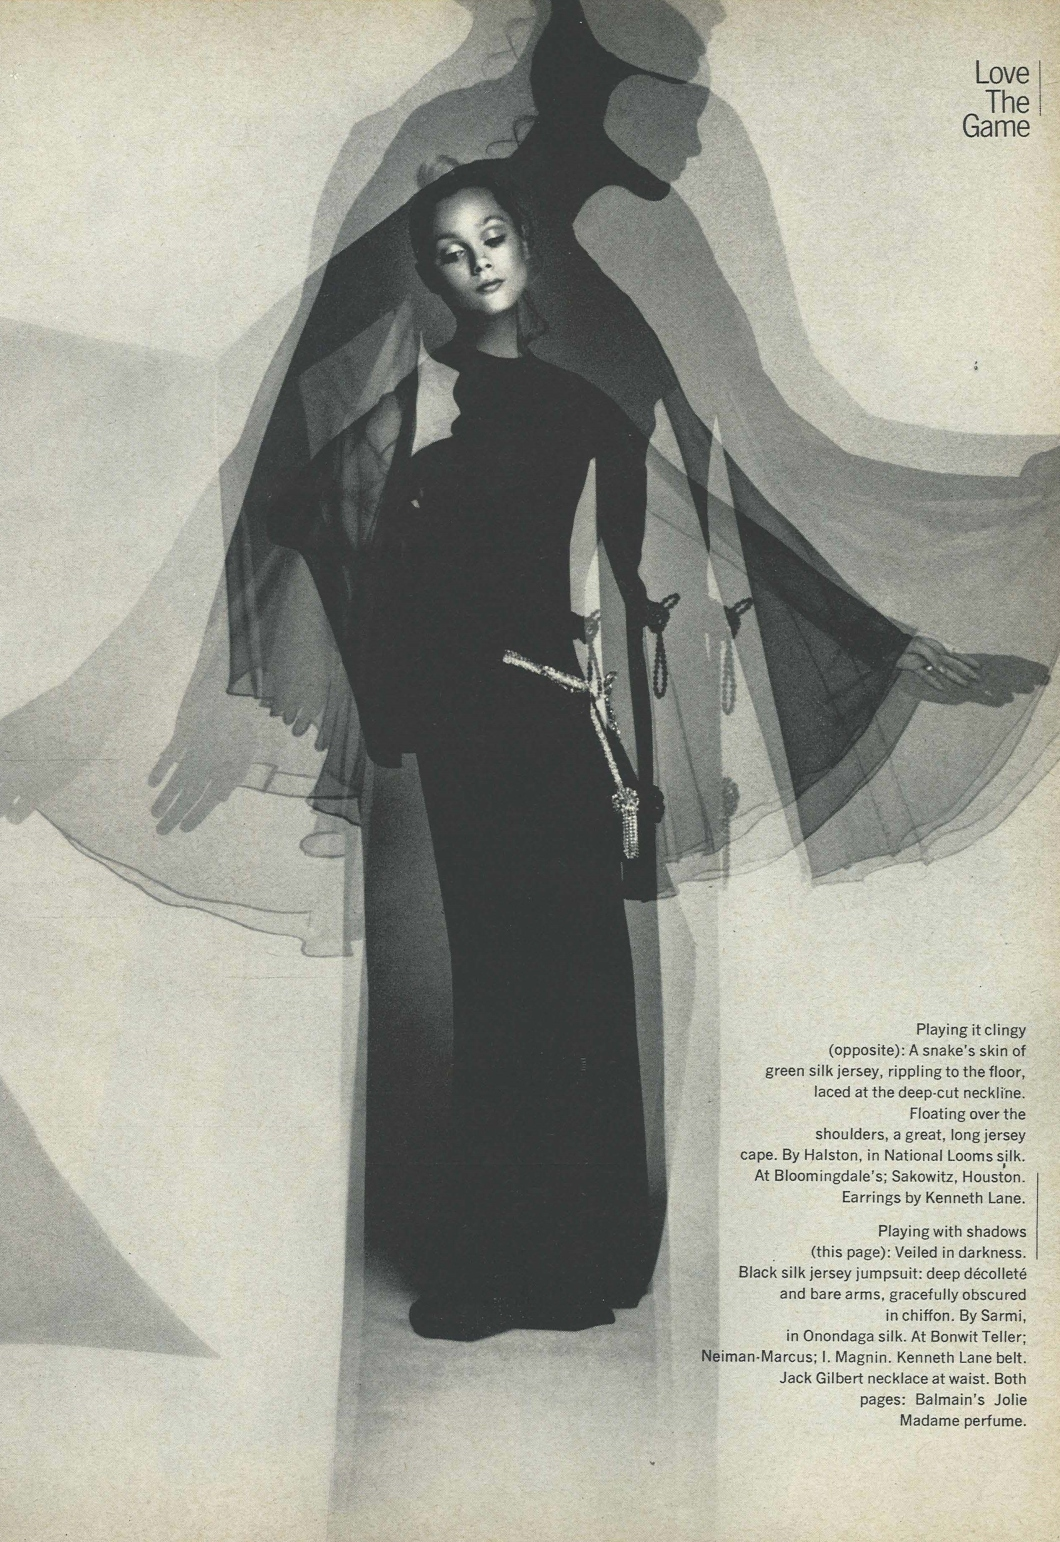 Vintage Fashion Spread Harper's Bazaar Feb 1970 Love the Game by Hiro